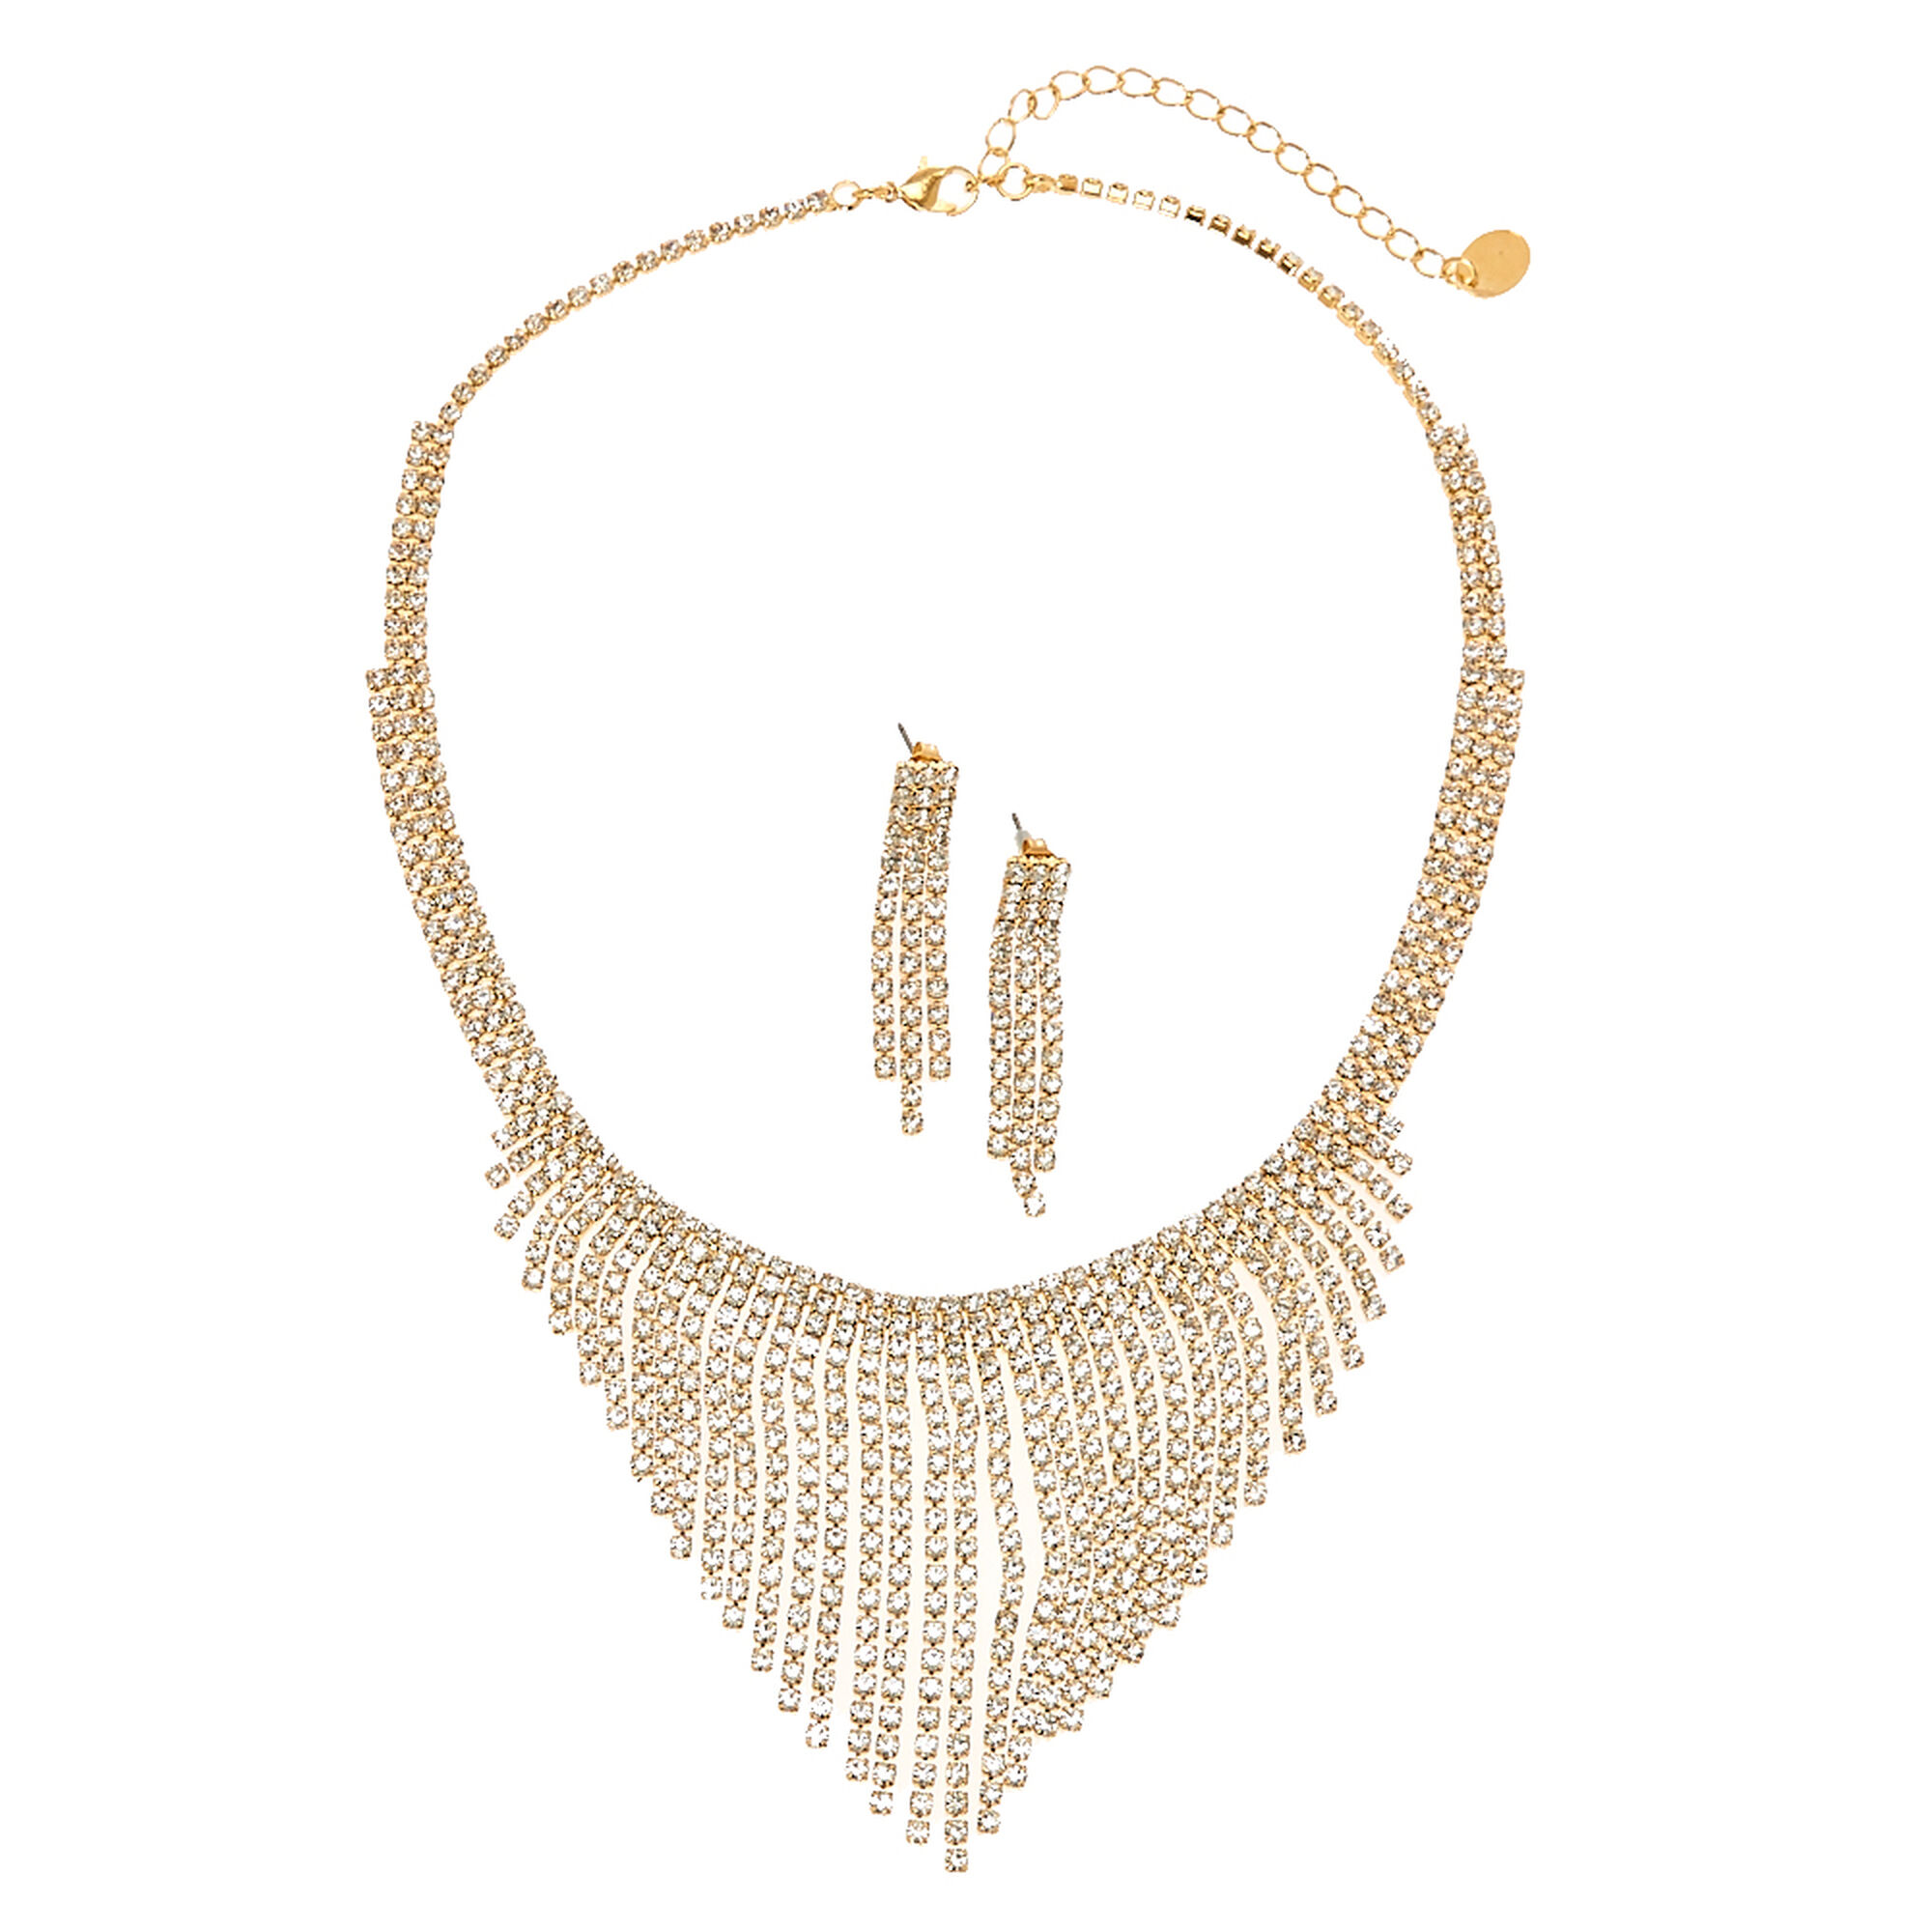 tassel layered fringe usjewelryhouse earrings products